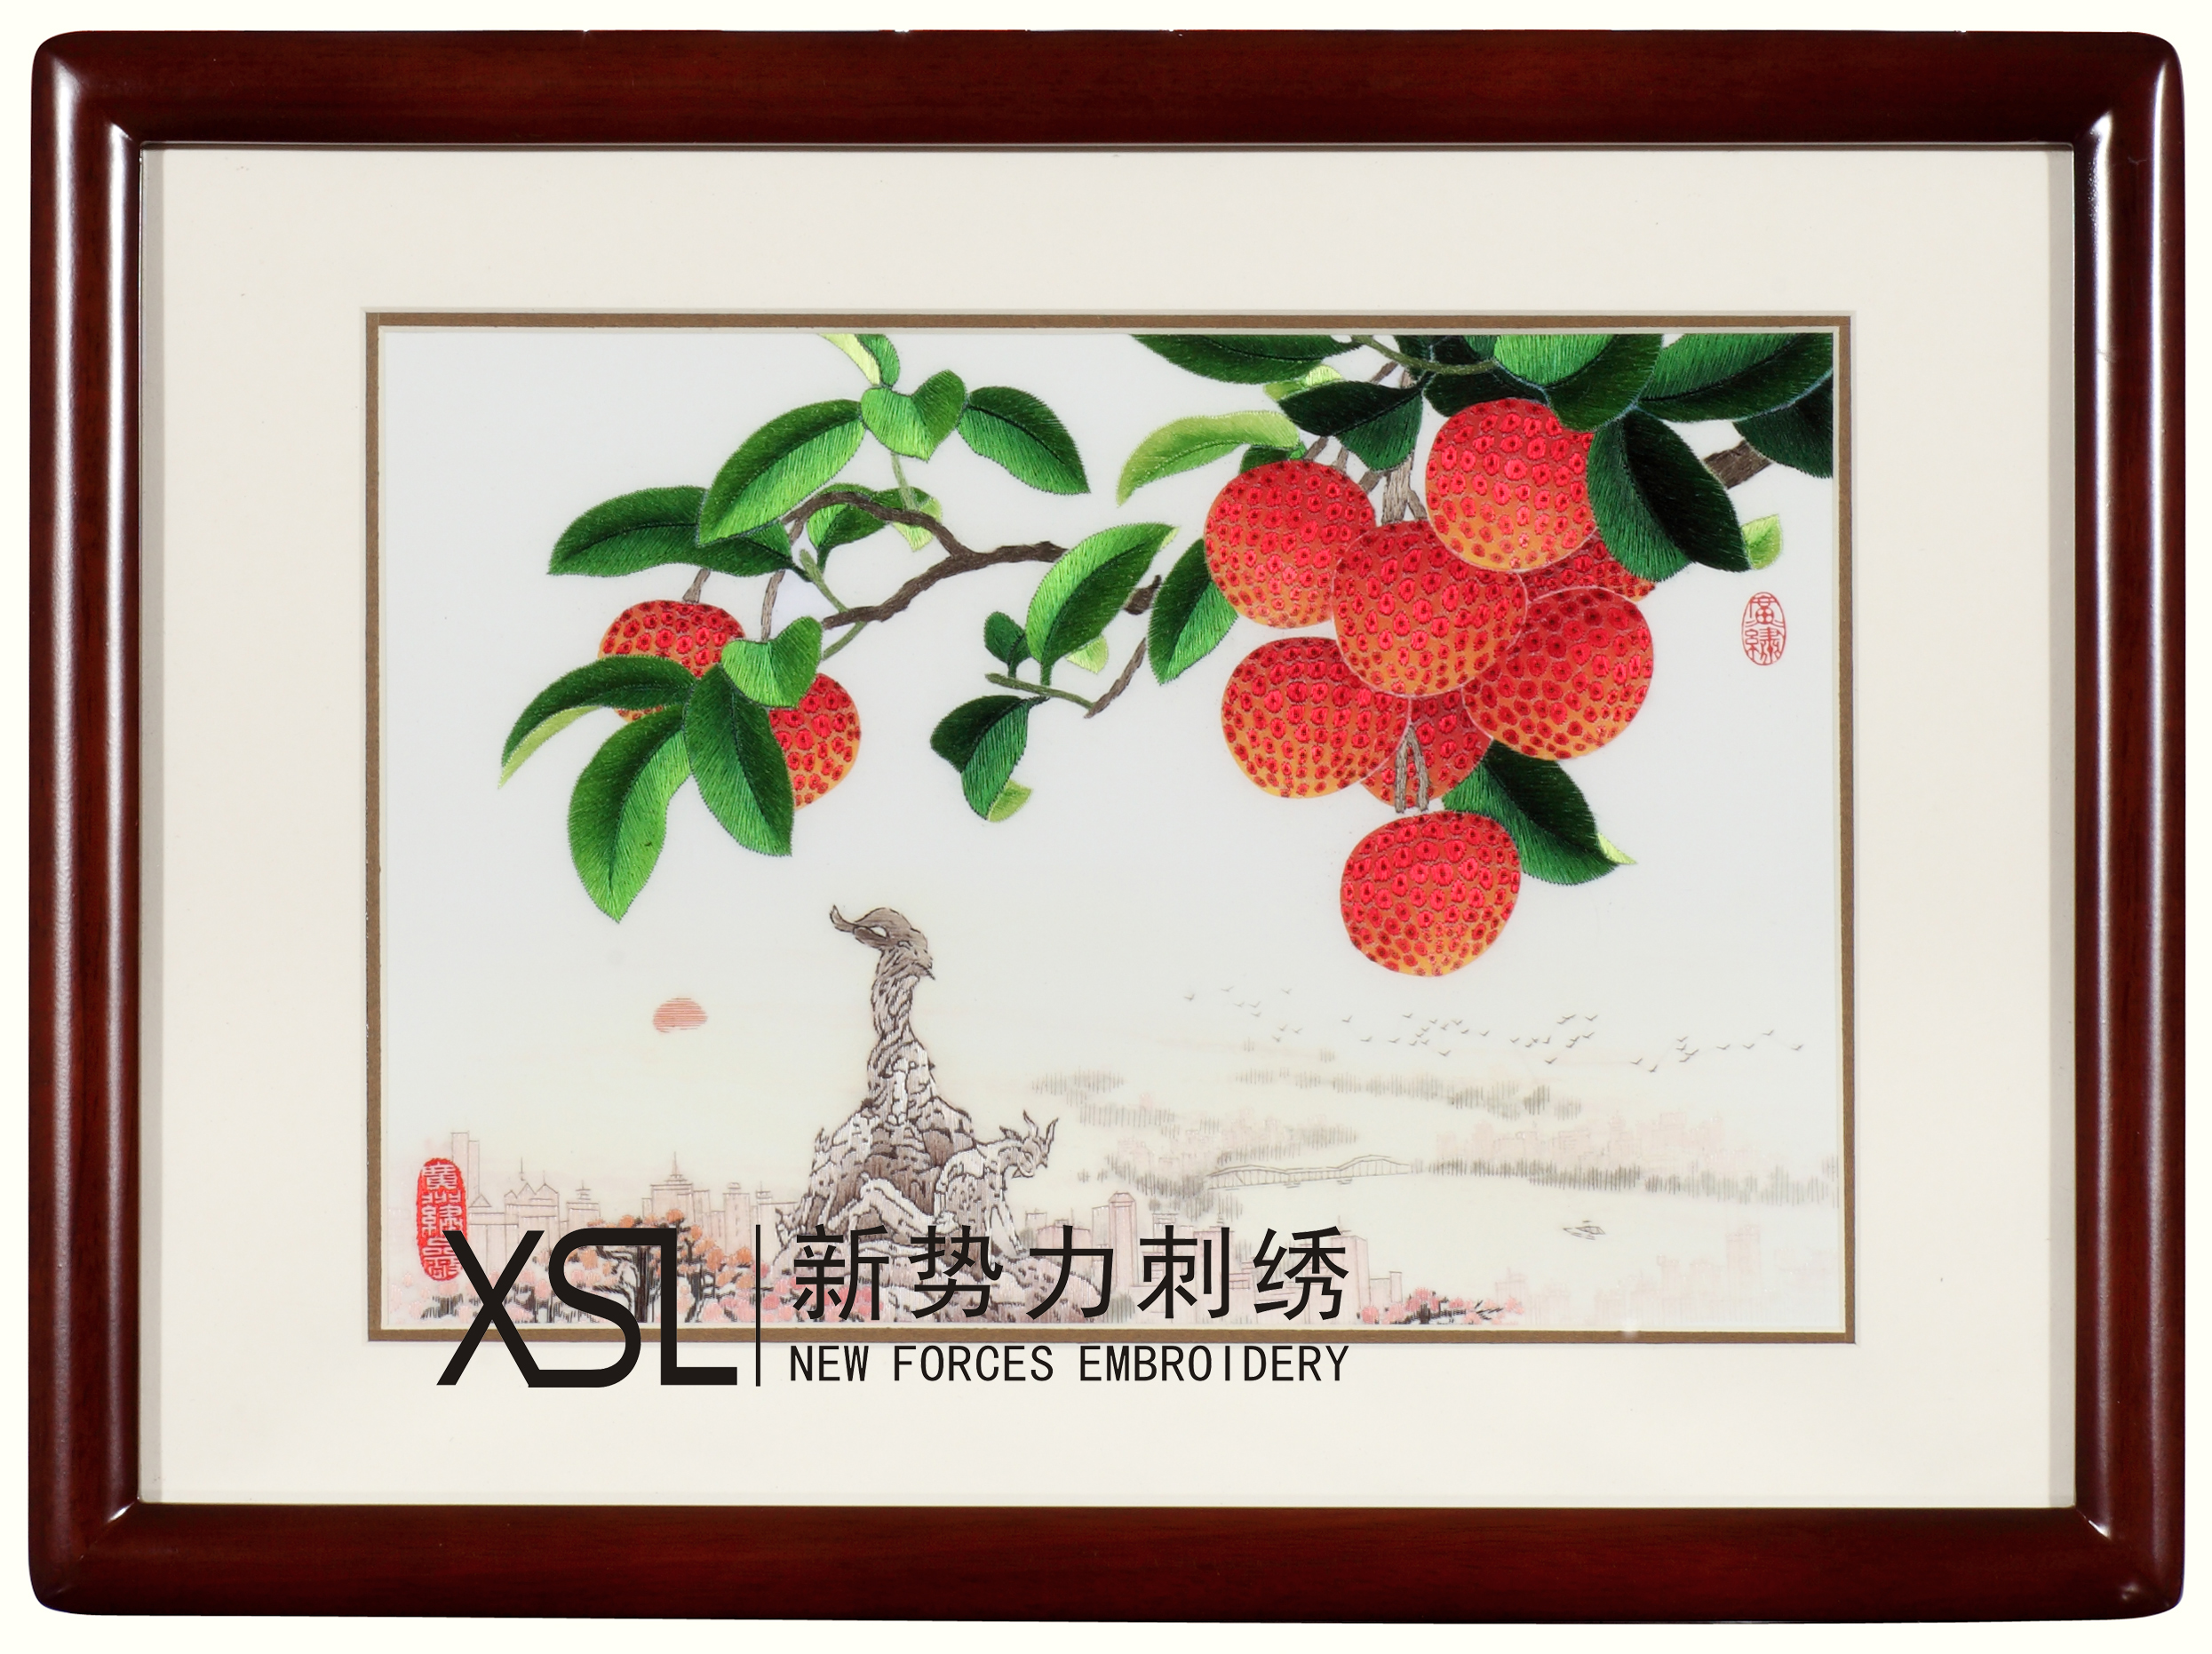 Вышивка Гуандун The Yue embroidery  28*38